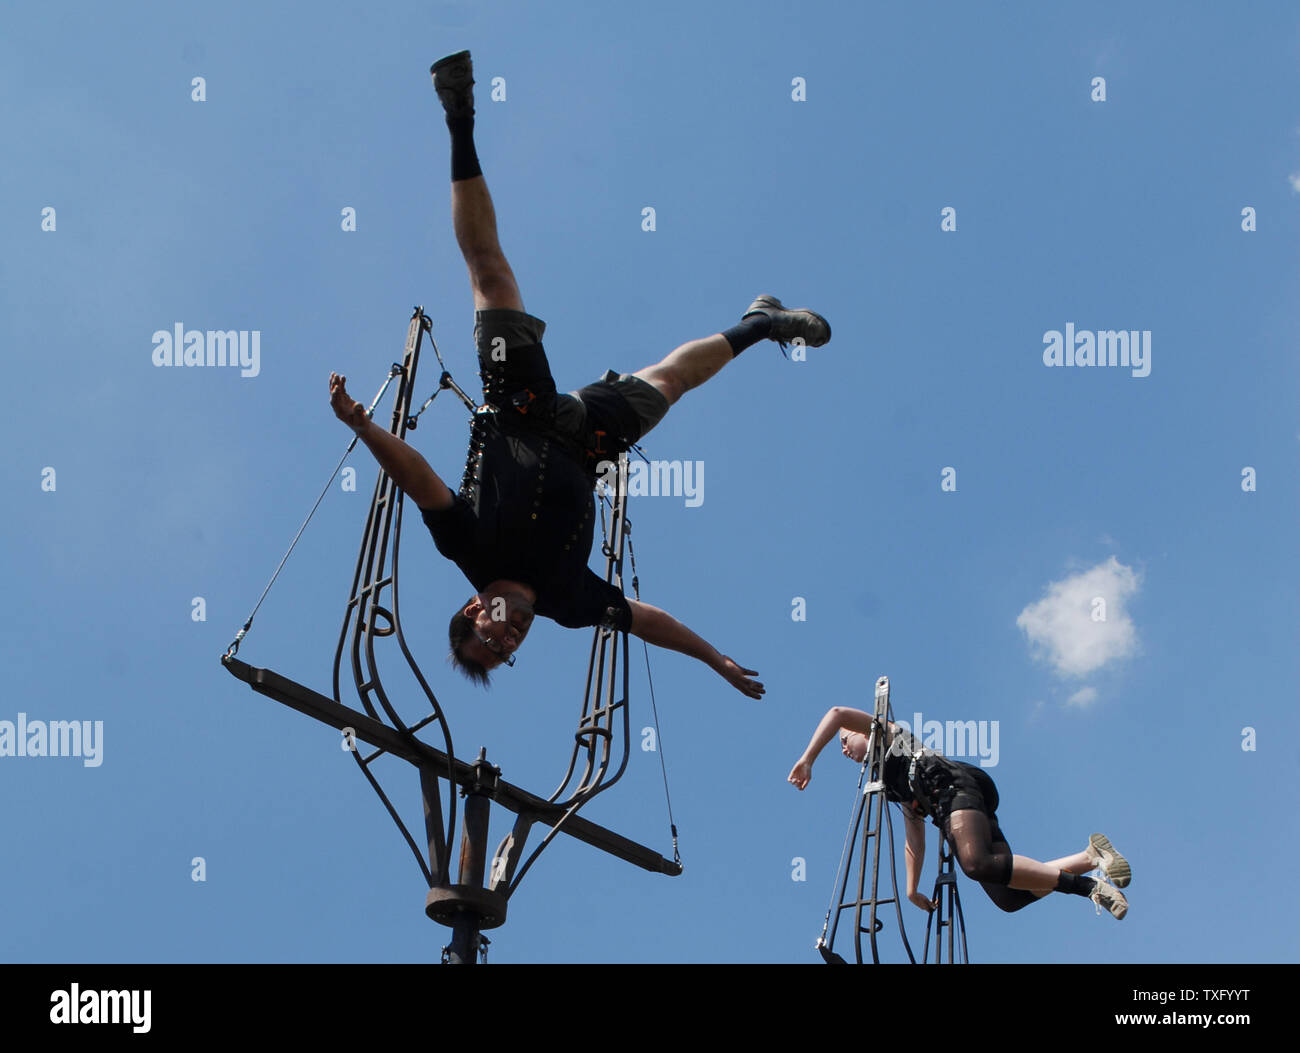 Acrobats perform at the Virgin Mobile Festival at Pimlico Race